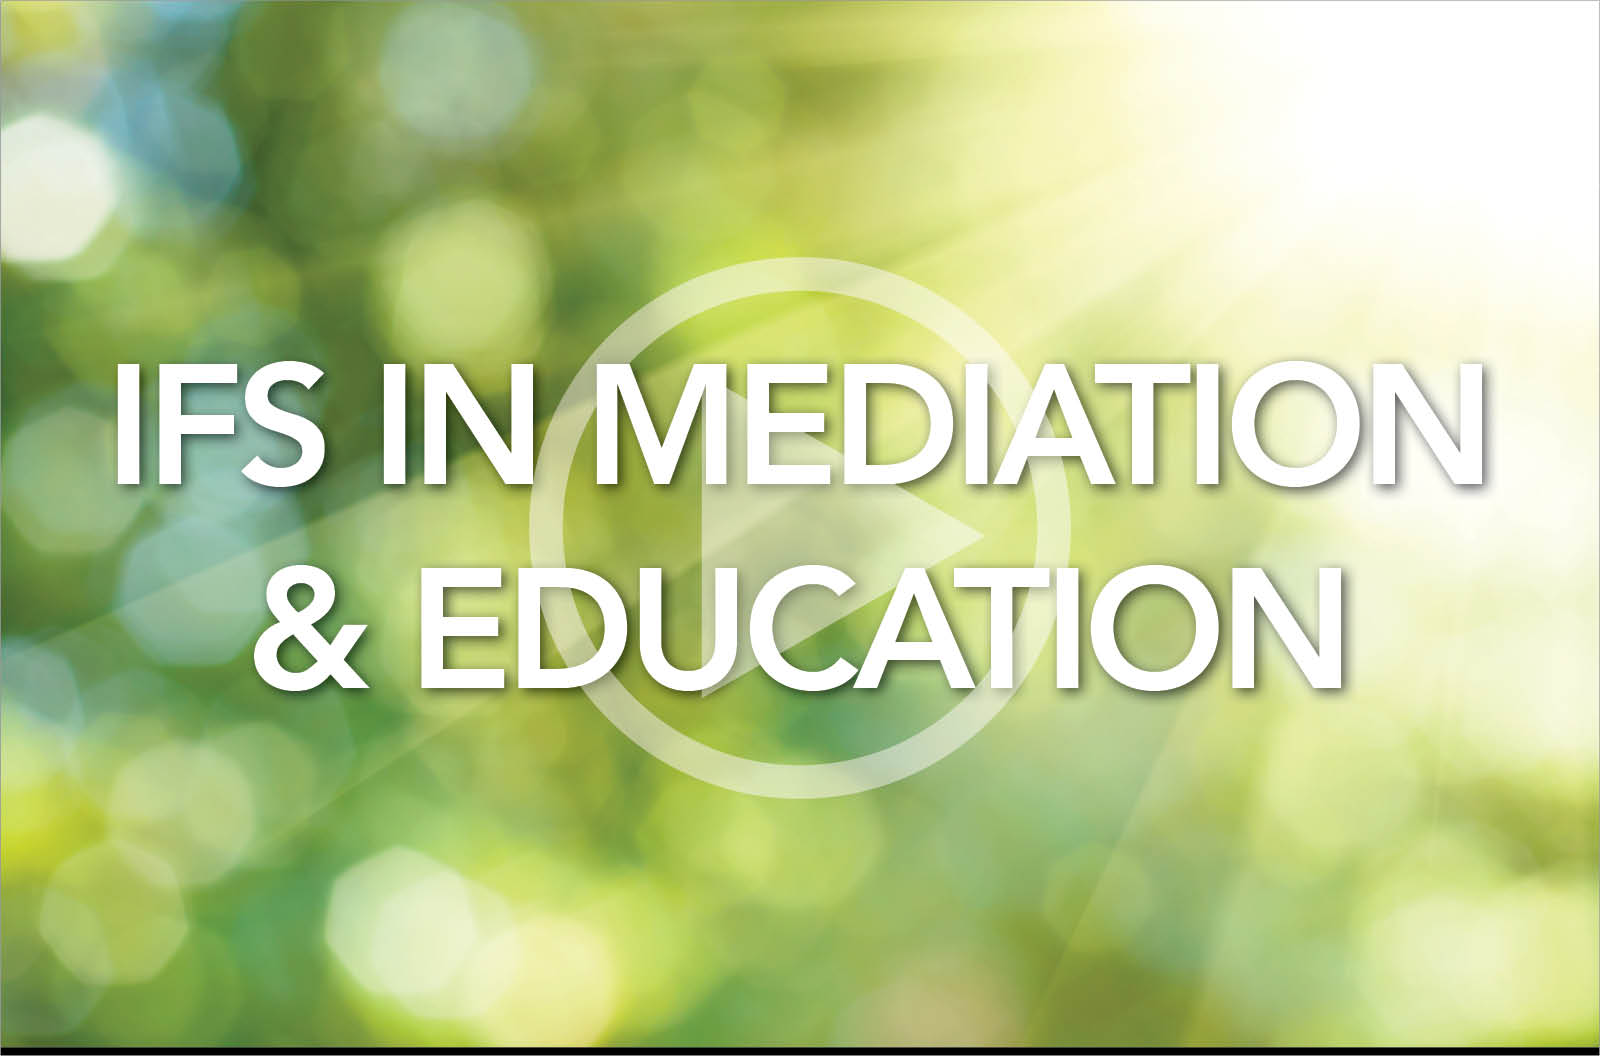 Meditation and Education